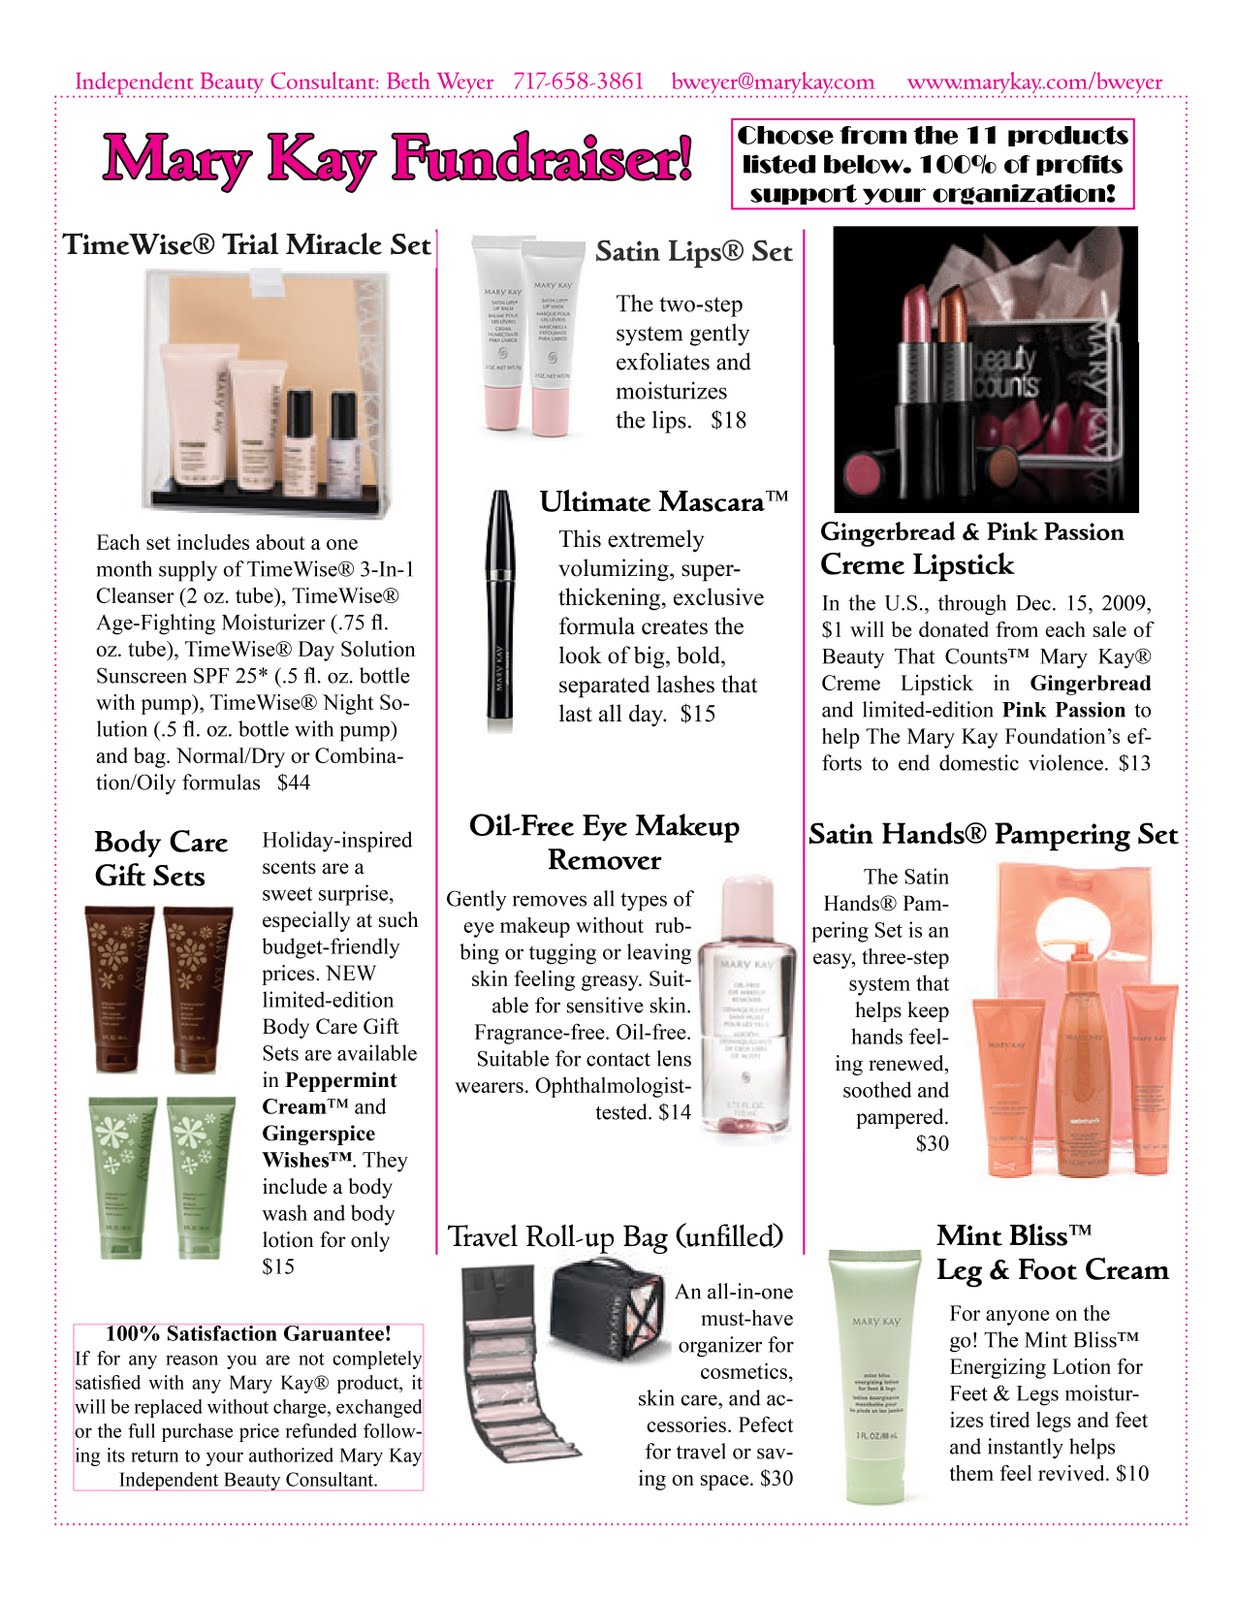 Mary Kay Fundraiser Sheet Pictures To Pin On Pinterest